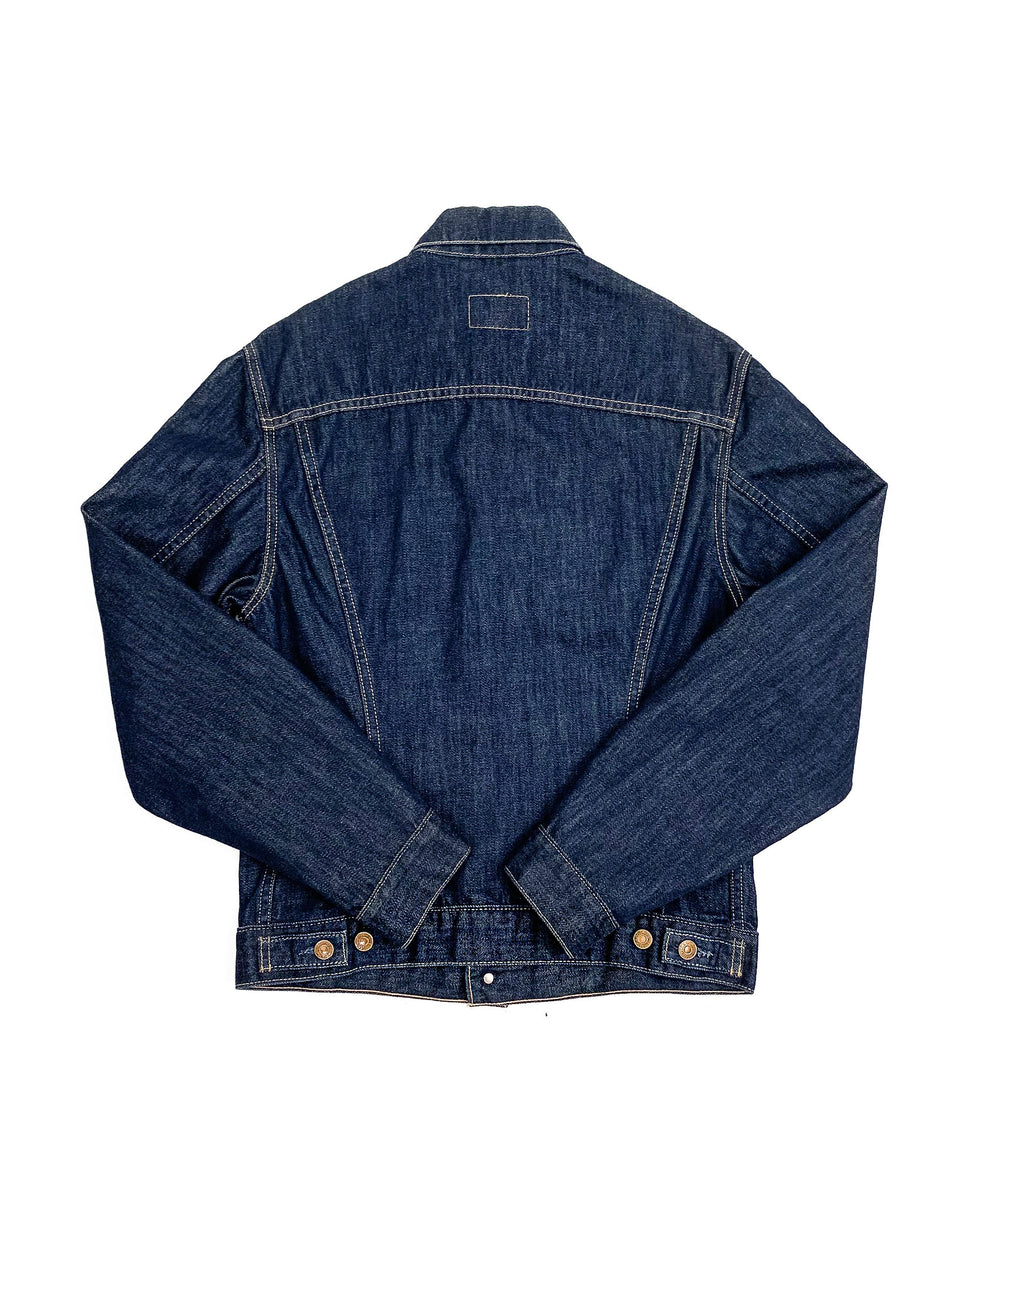 LEVI'S INDIGO DENIM JACKET